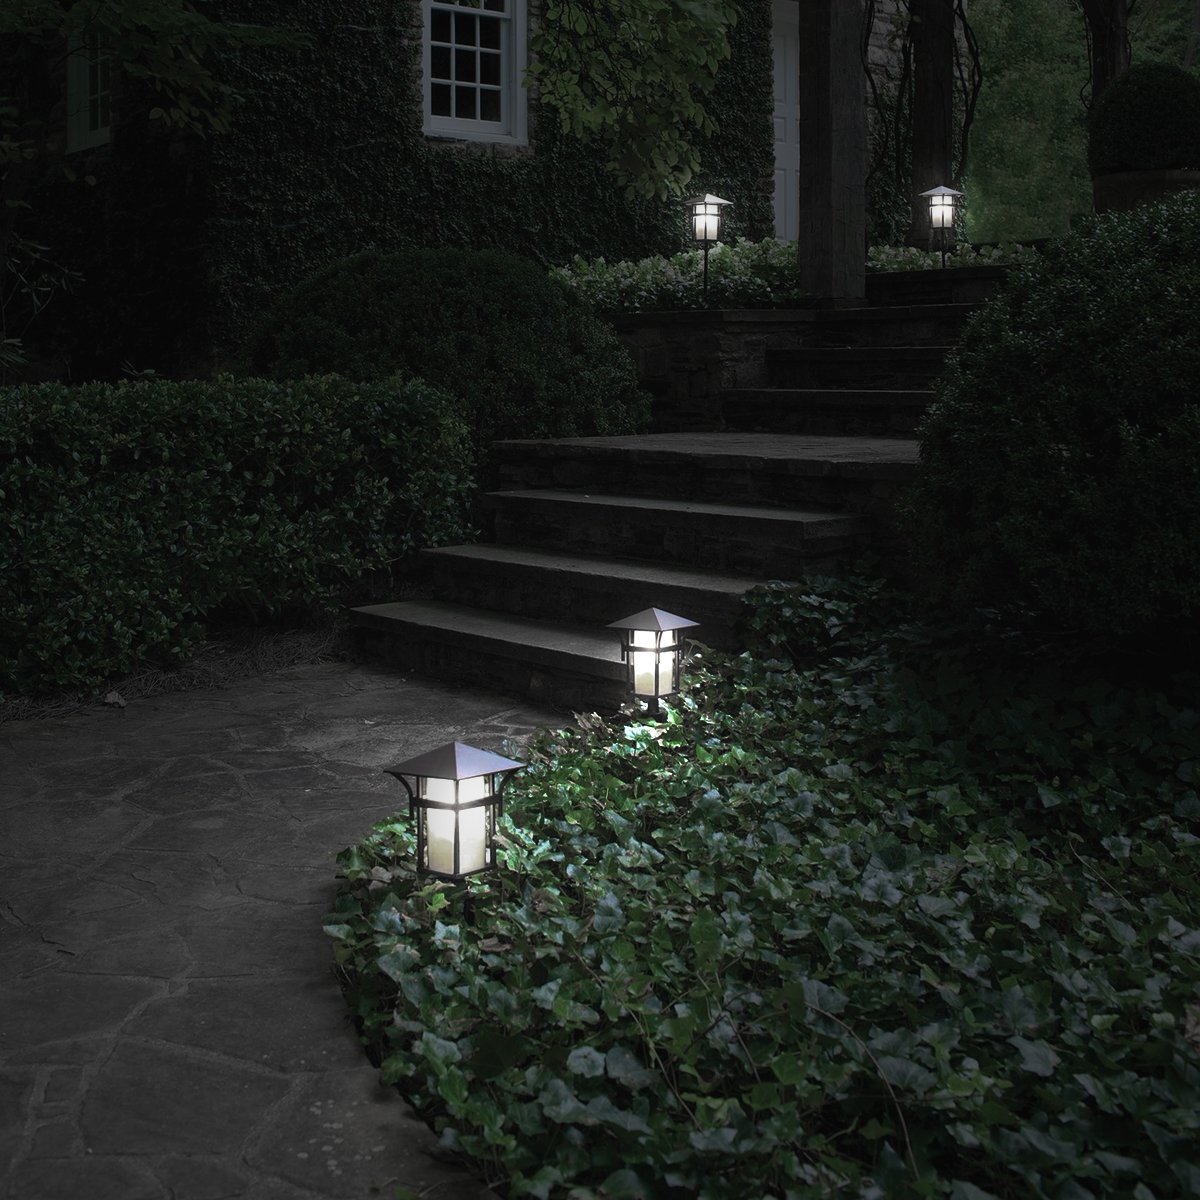 JandCase E12 Light Sensor Candelabra Bulb, Dusk to Dawn LED Bulbs for Porch, Daylight White(5000K), 40W Equivalent, 5W, 450lm, G14 Automatic Indoor/Outdoor Security Lights for Patio, Hallway, 4 Pack by JandCase (Image #7)